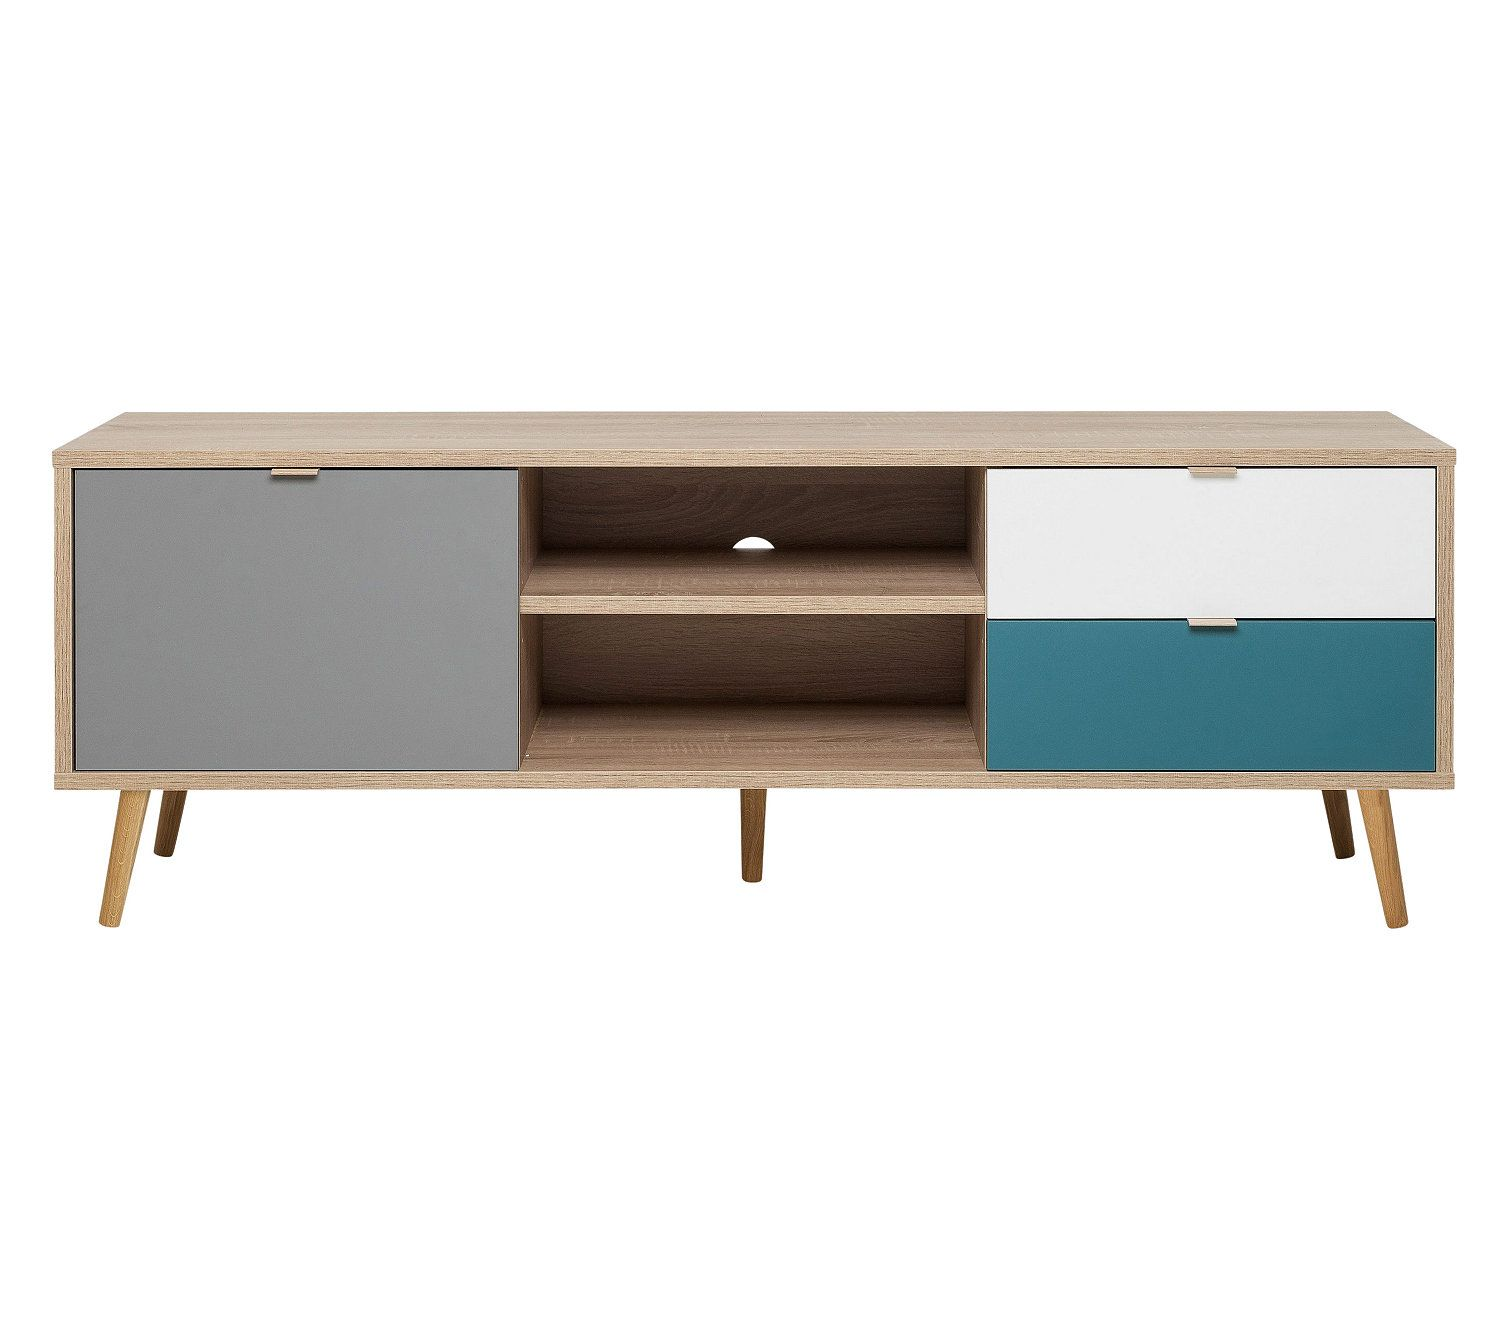 meuble tv scandinave aruba ch ne gris bleu et blanc en. Black Bedroom Furniture Sets. Home Design Ideas